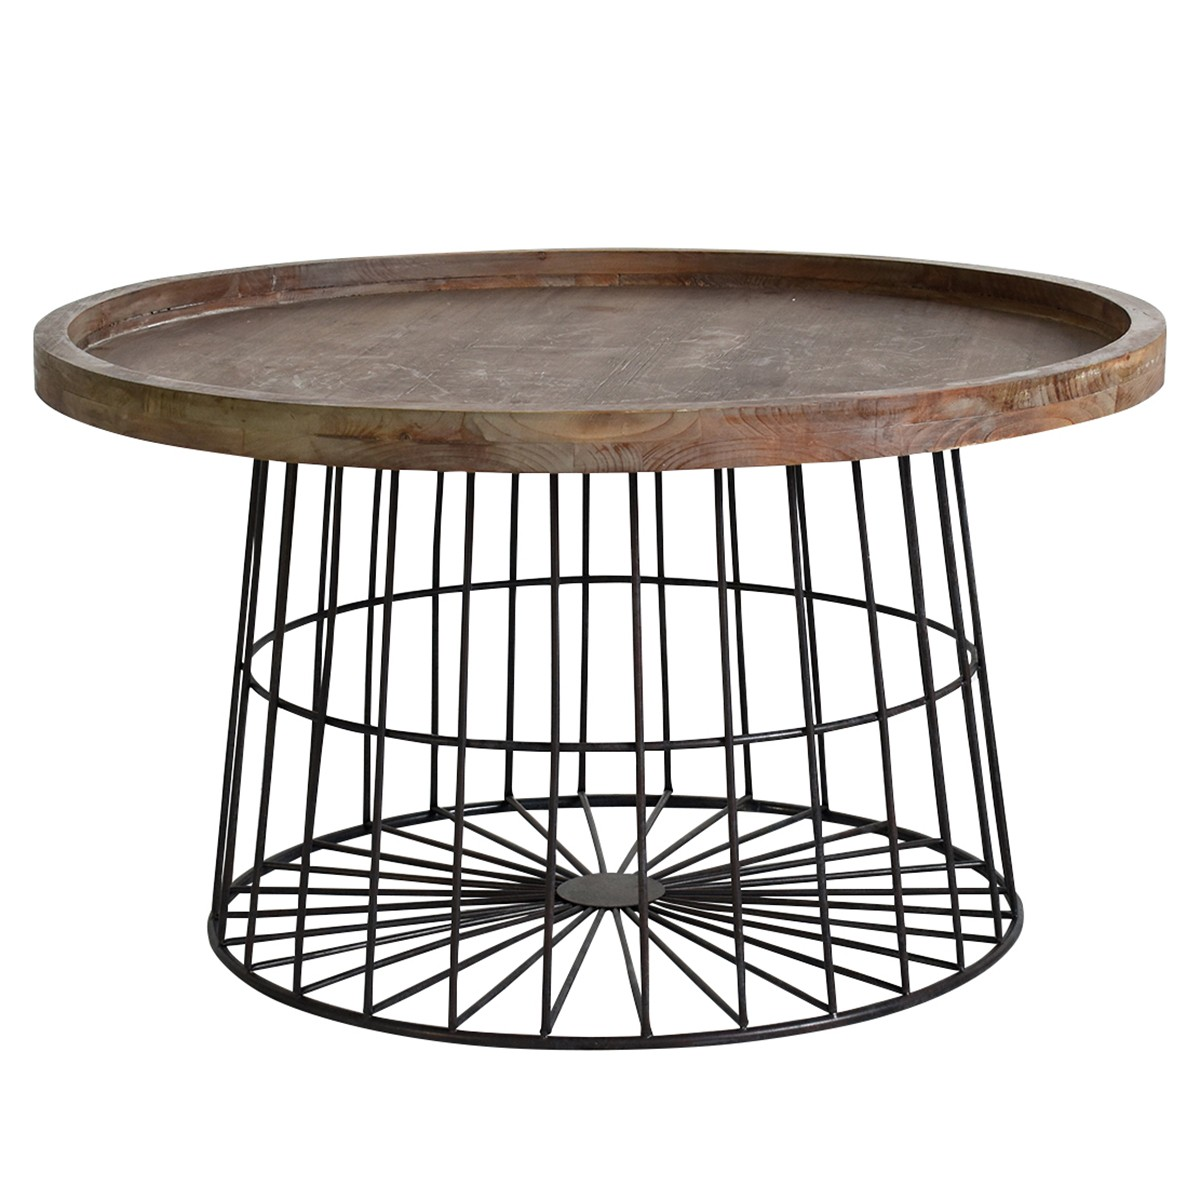 Myrick Fir Timber & Metal Tray Top Round Coffee Table, 80cm